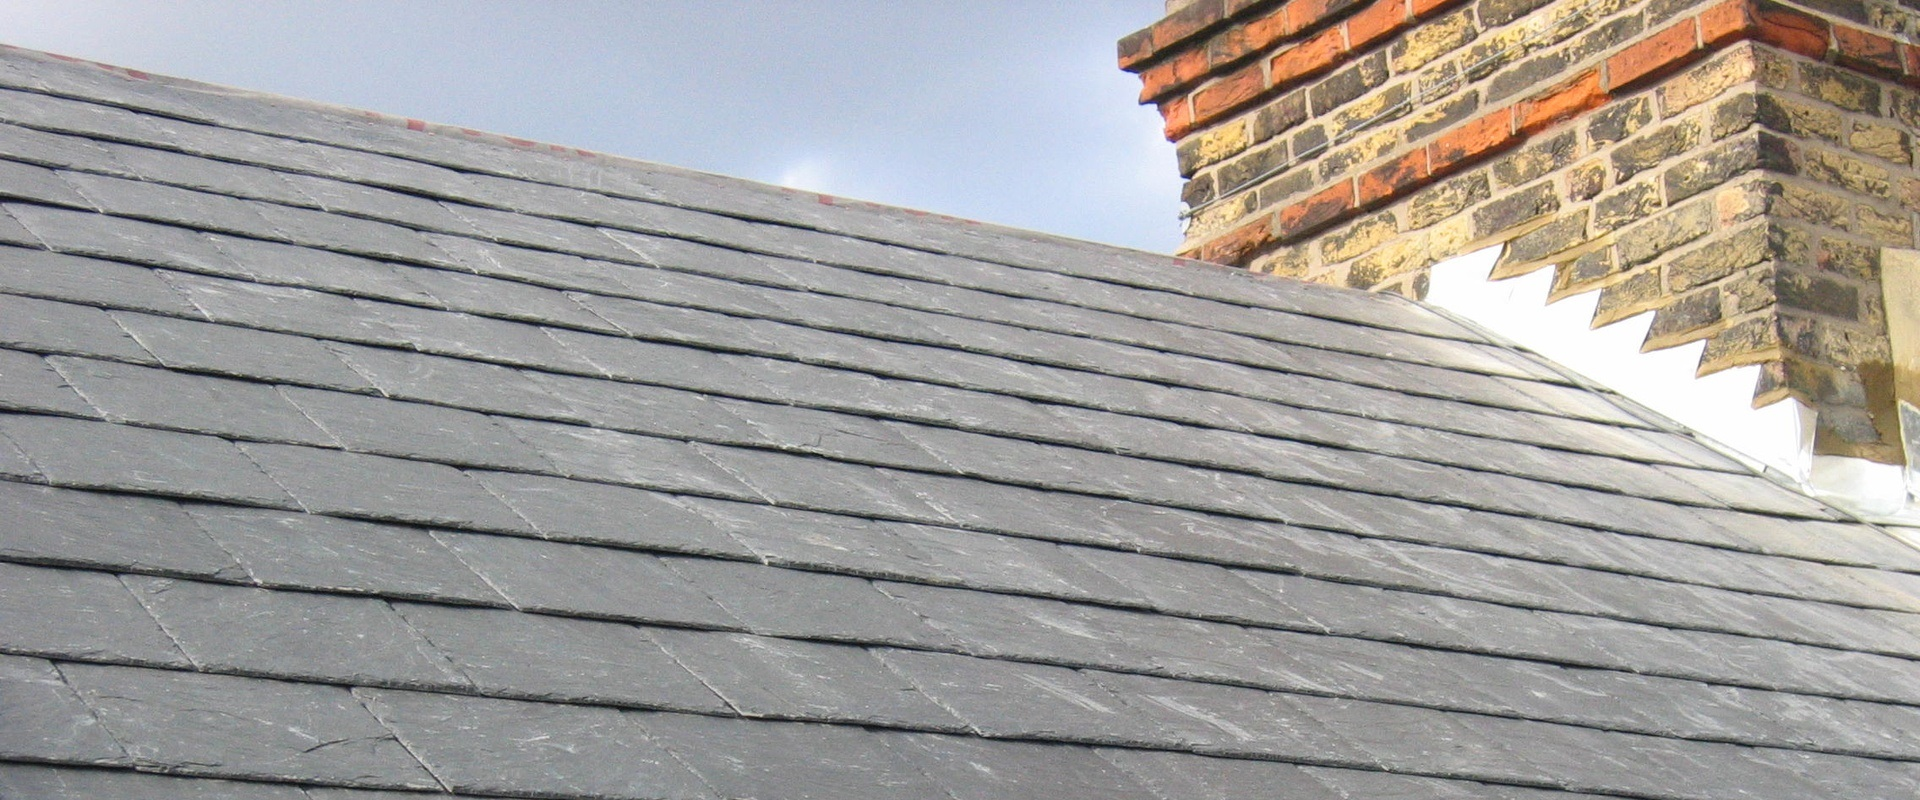 New Slate Roof Dublin